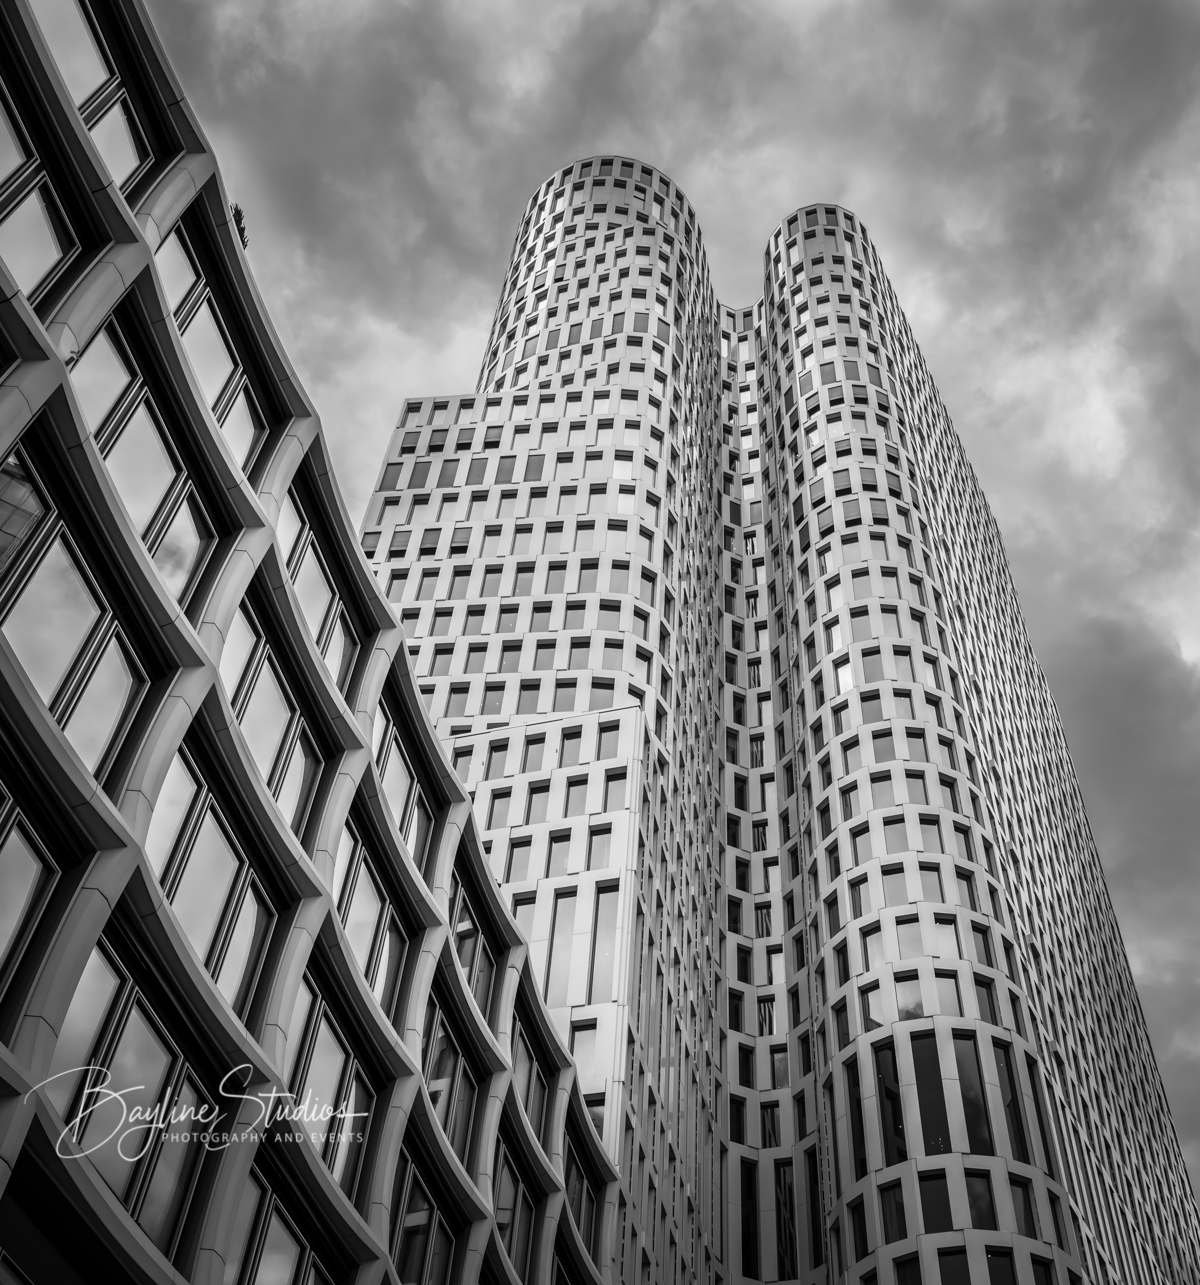 Architectural Design Photography